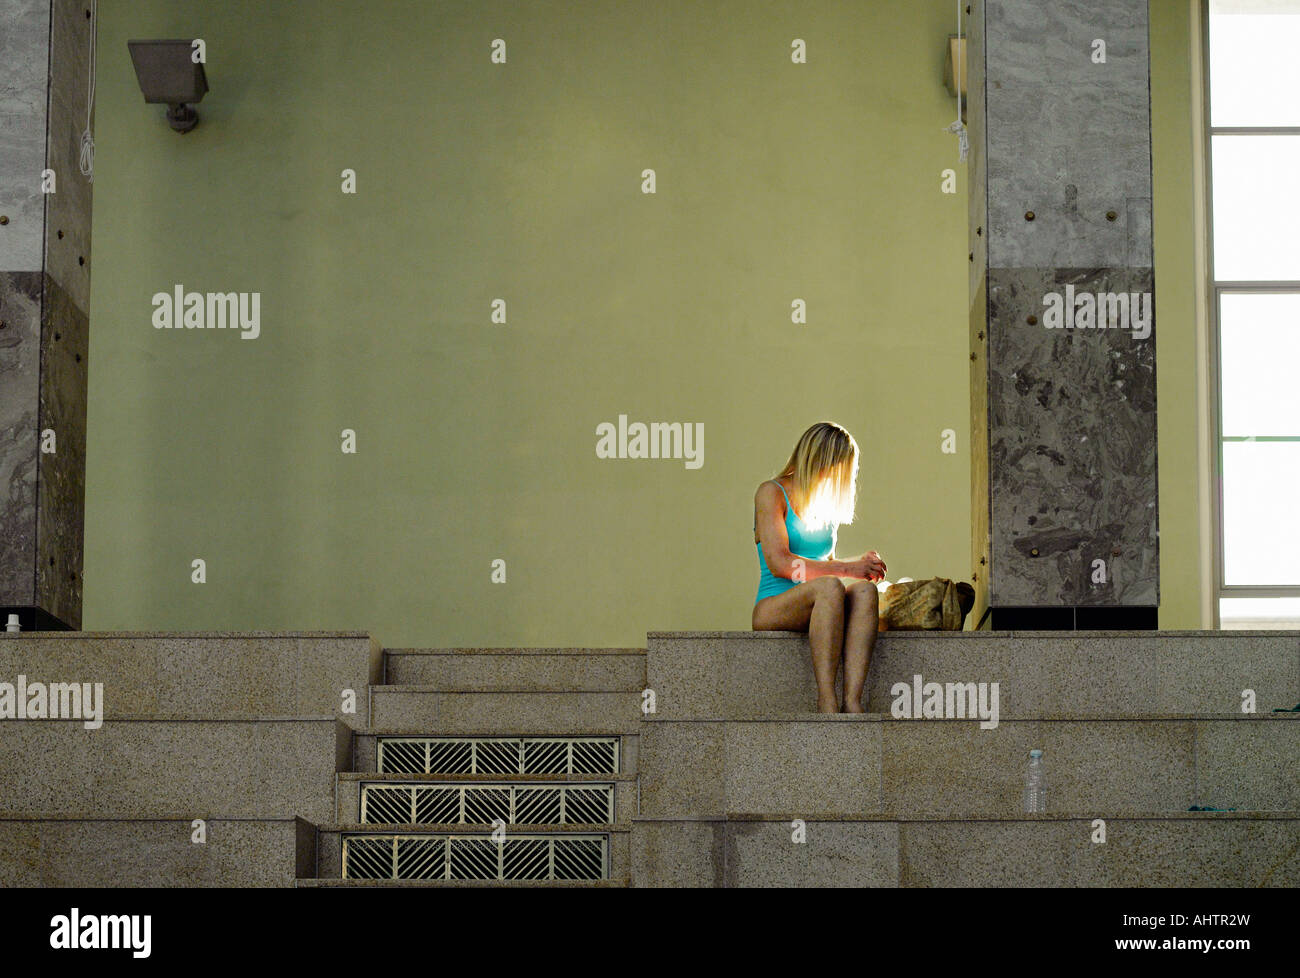 Woman sitting on steps, looking in bag - Stock Image